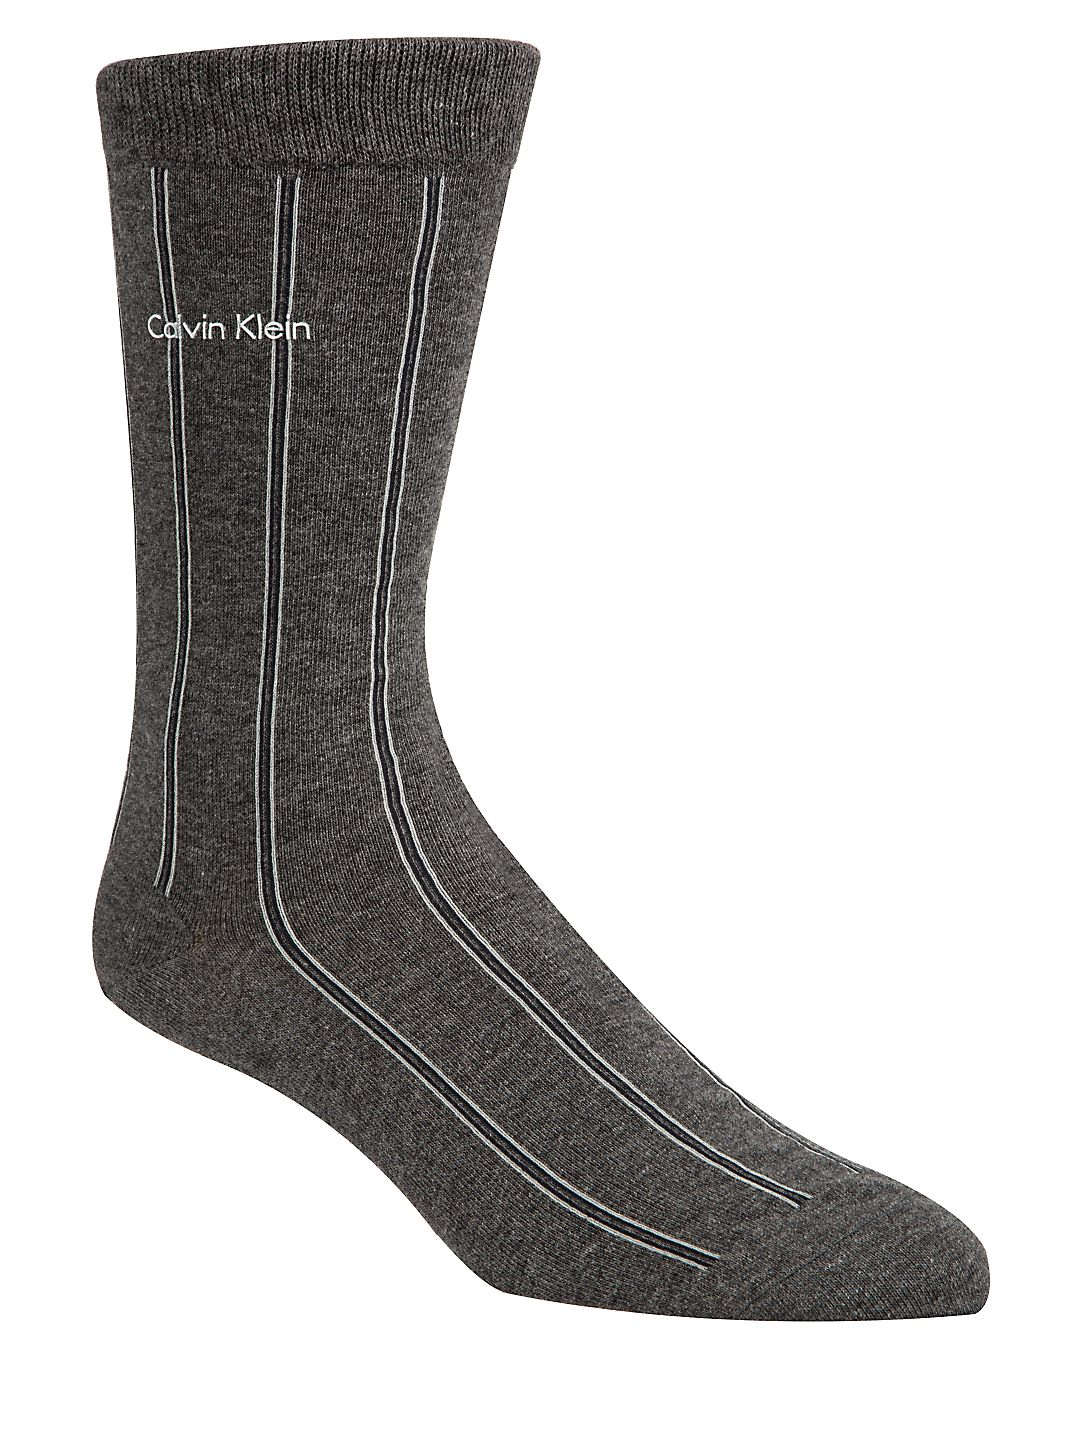 Chalk Stripe Crew Socks